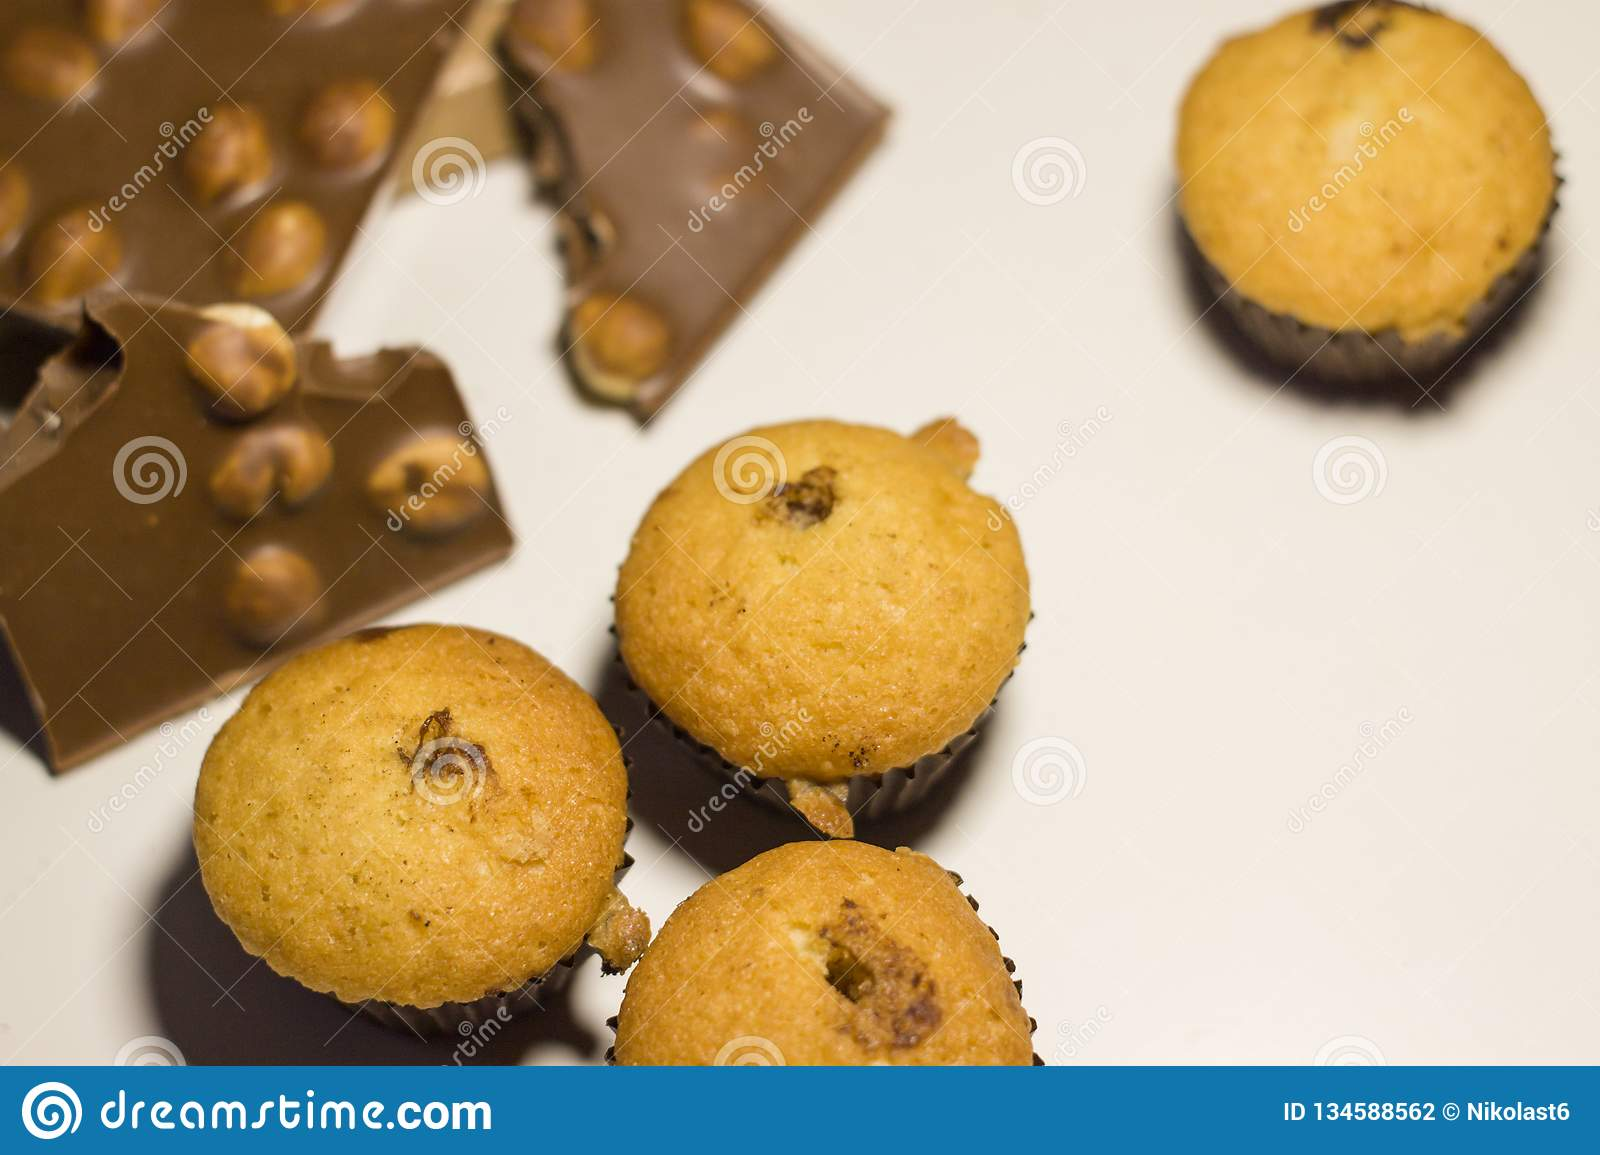 Closeup of sweets, chocolate with nuts and muffins on a white background.